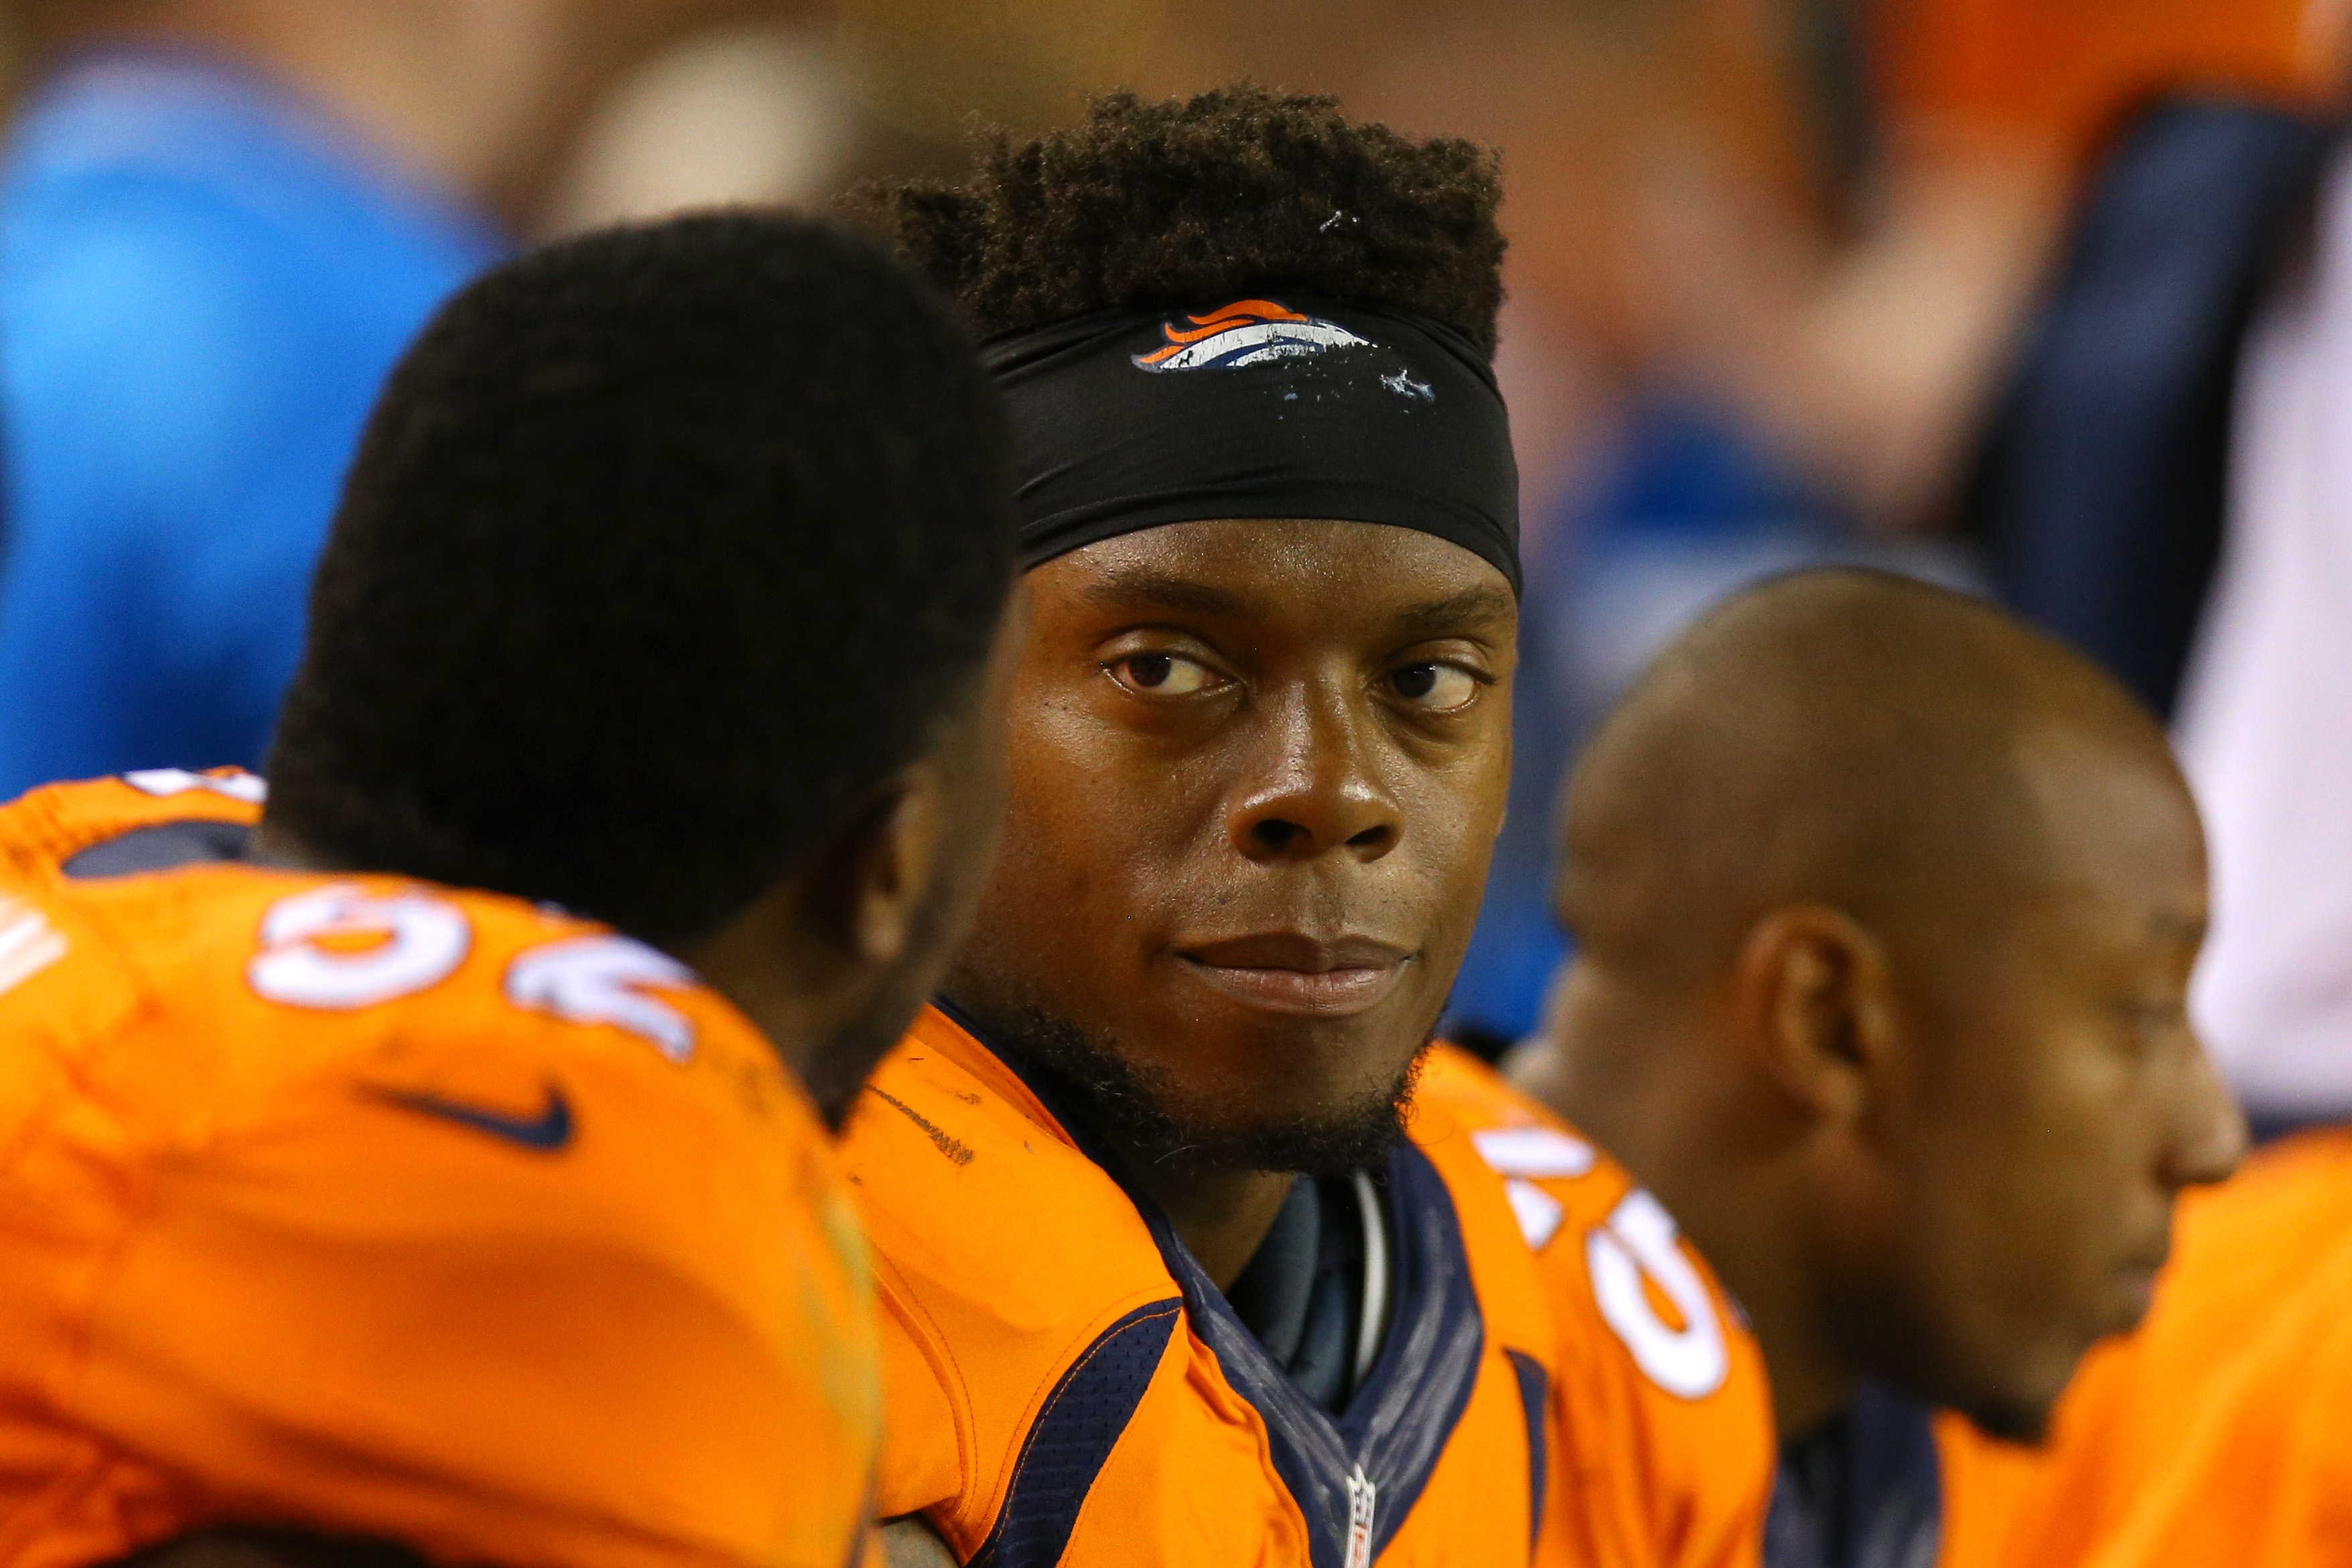 Inside linebacker Brandon Marshall of the Denver Broncos looks on from the bench in the first half against the Carolina Panthers at Sports Authority Field at Mile High on Sept. 8, 2016.  (Photo by Justin Edmonds/Getty Images)